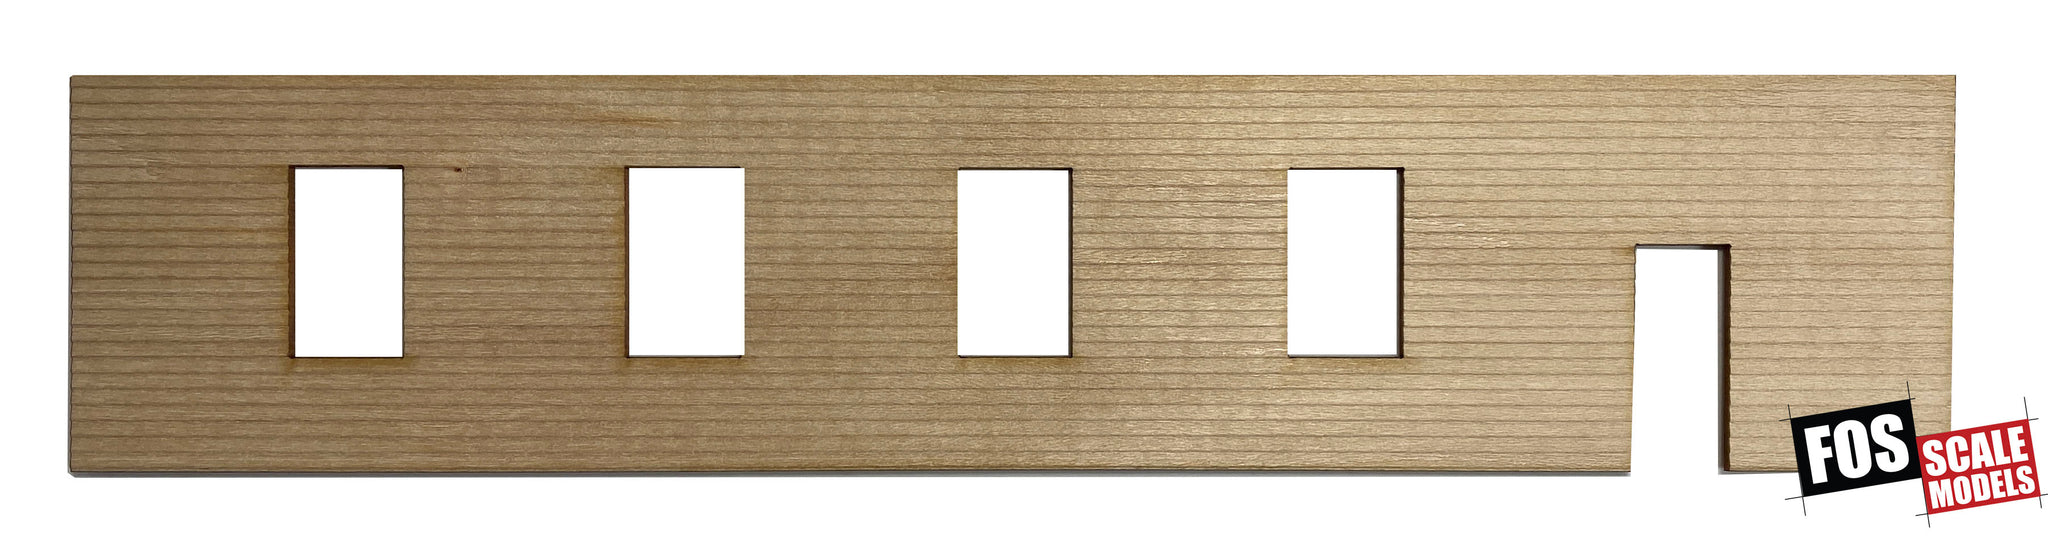 CLAPBOARD WALL SECTION - D107 HO SCALE